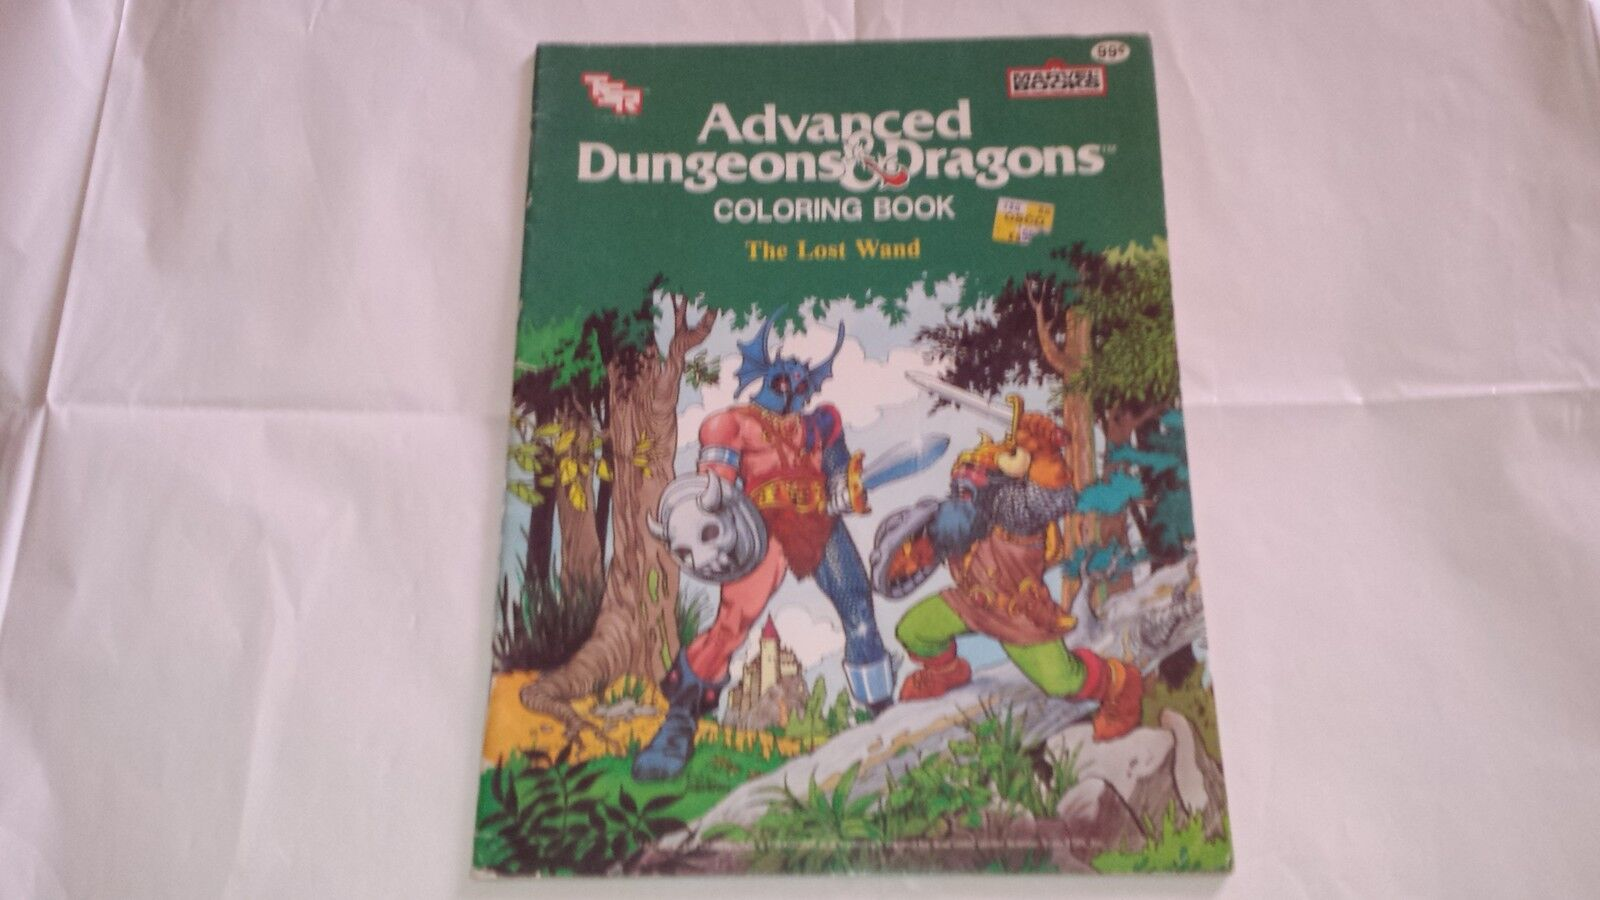 Advanced Dungeons & Dragons Coloring Coloring Coloring Book The Lost Wand TSR AD&D  rare 43dcd3